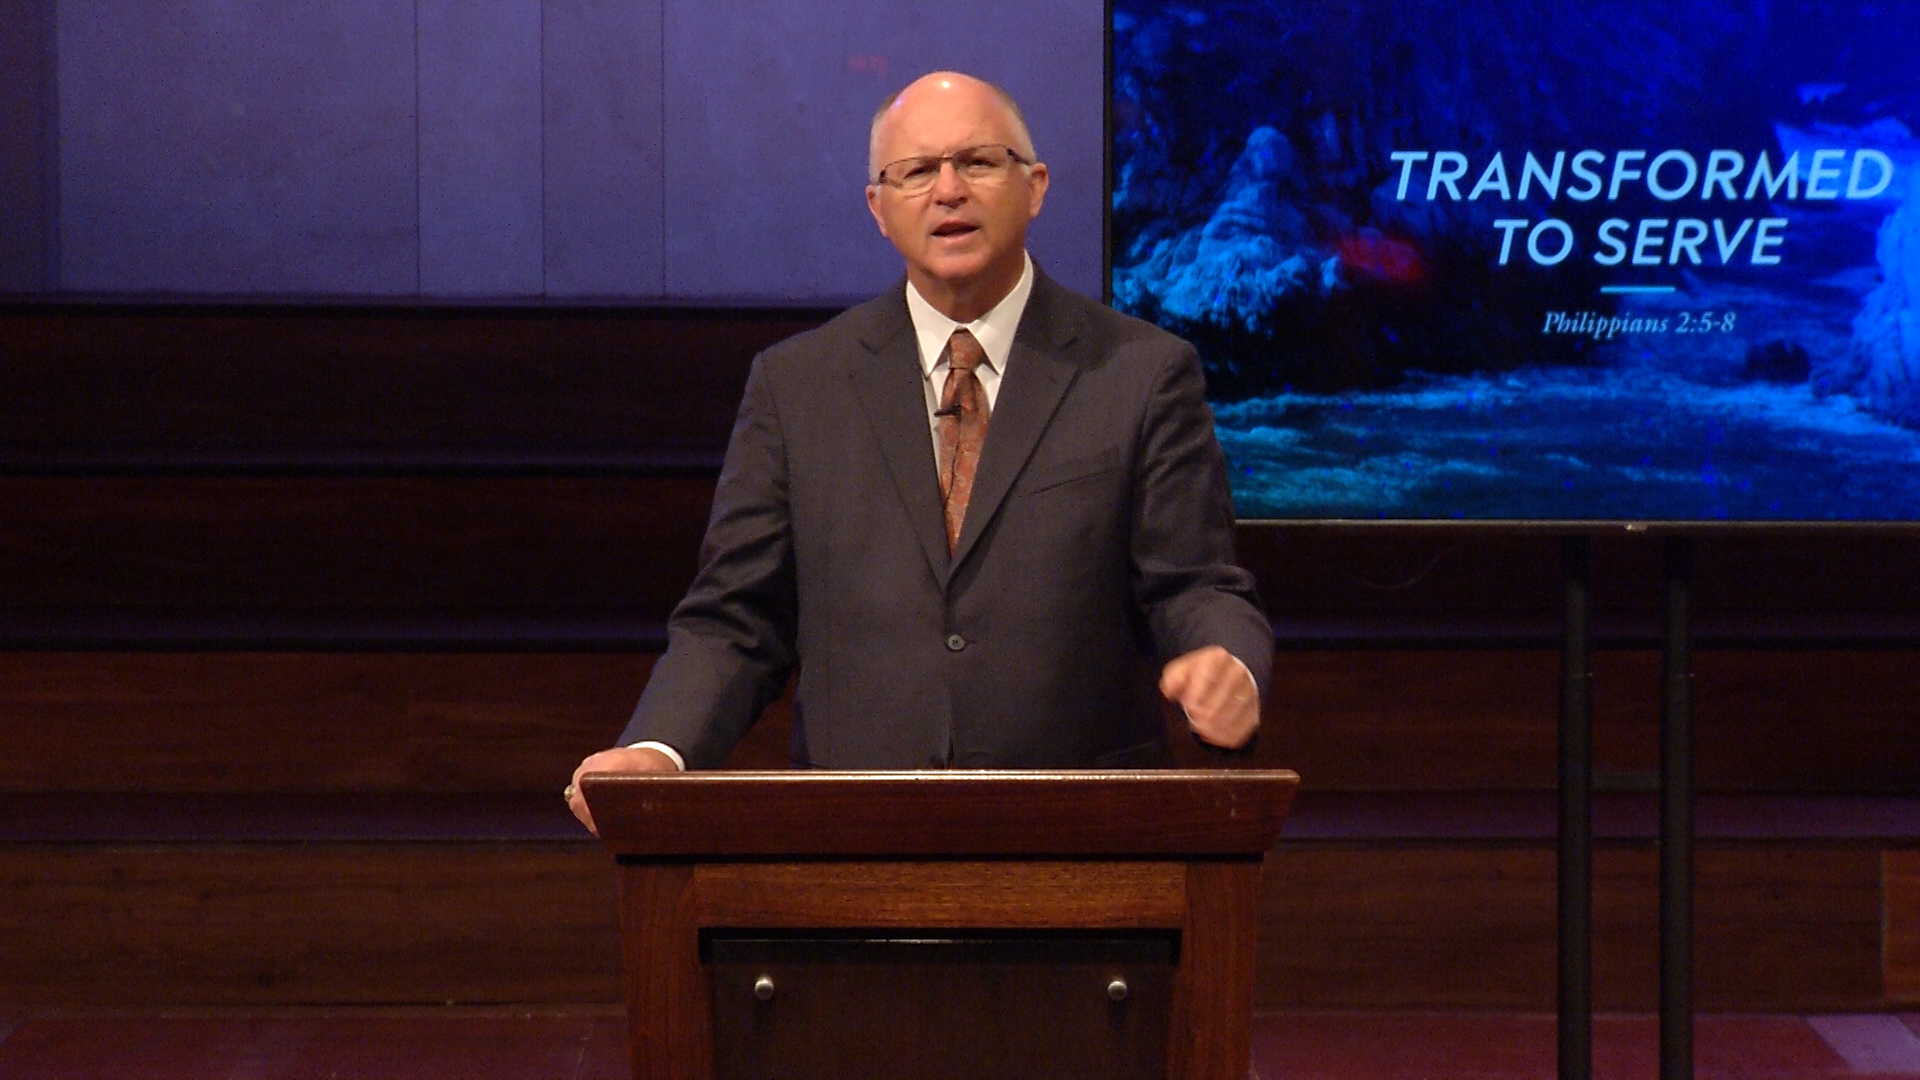 Pastor Paul Chappell: Transformed to Serve